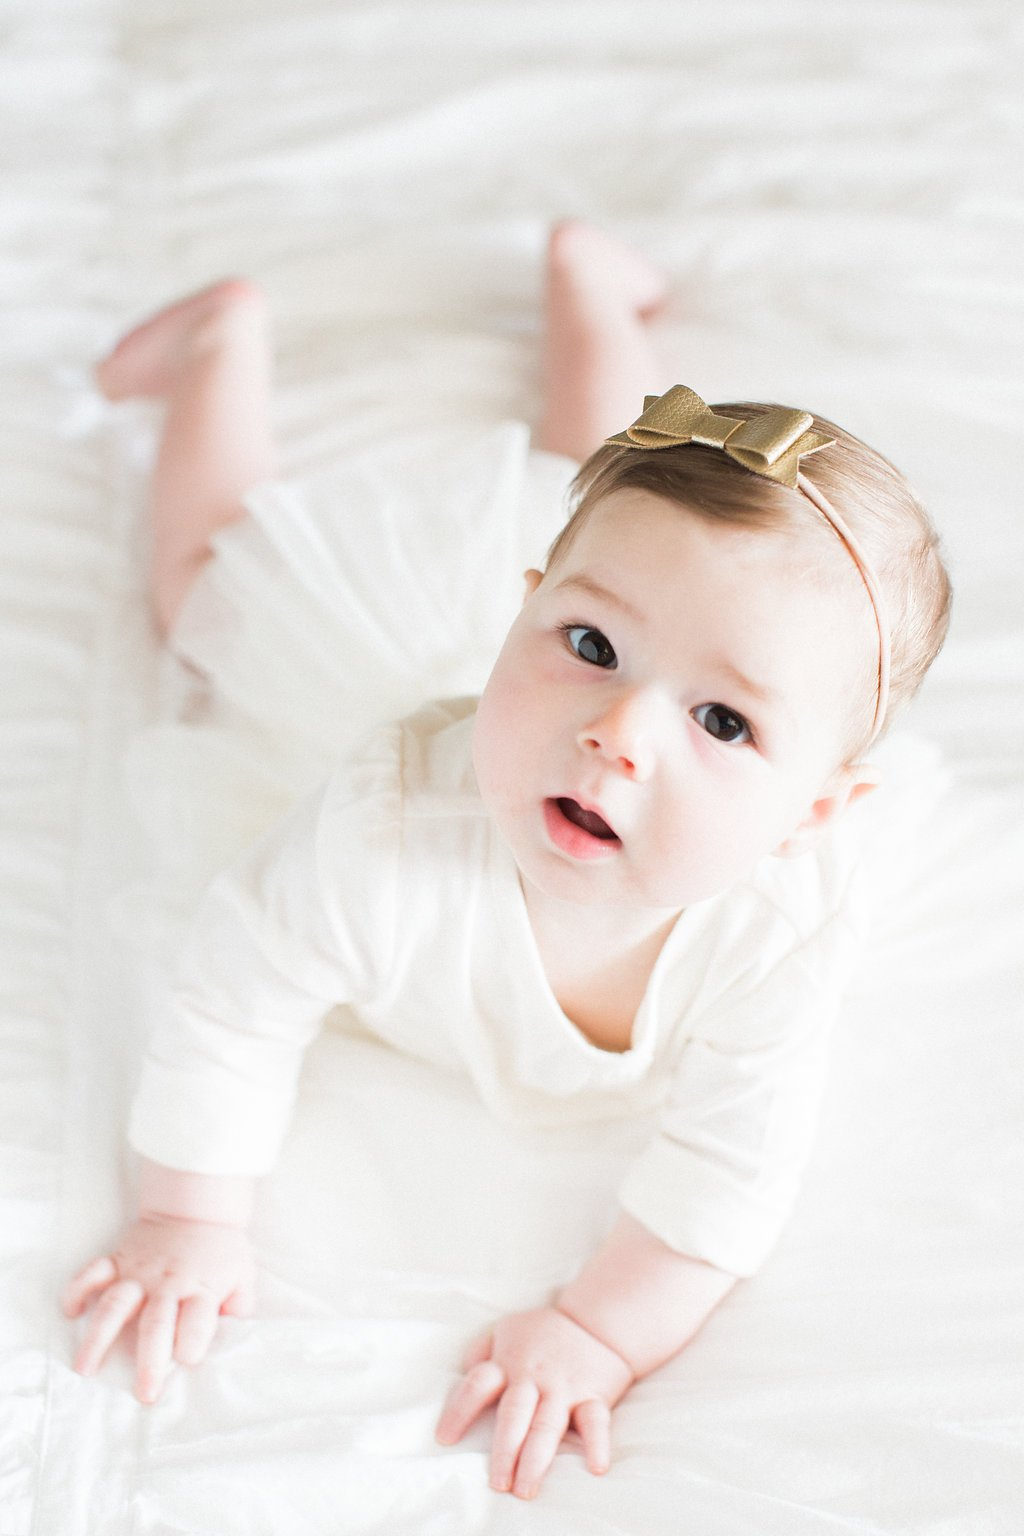 Photo of baby lying on a bed in a white dress with a gold bow in her hair during in-home lifestyle family photography session